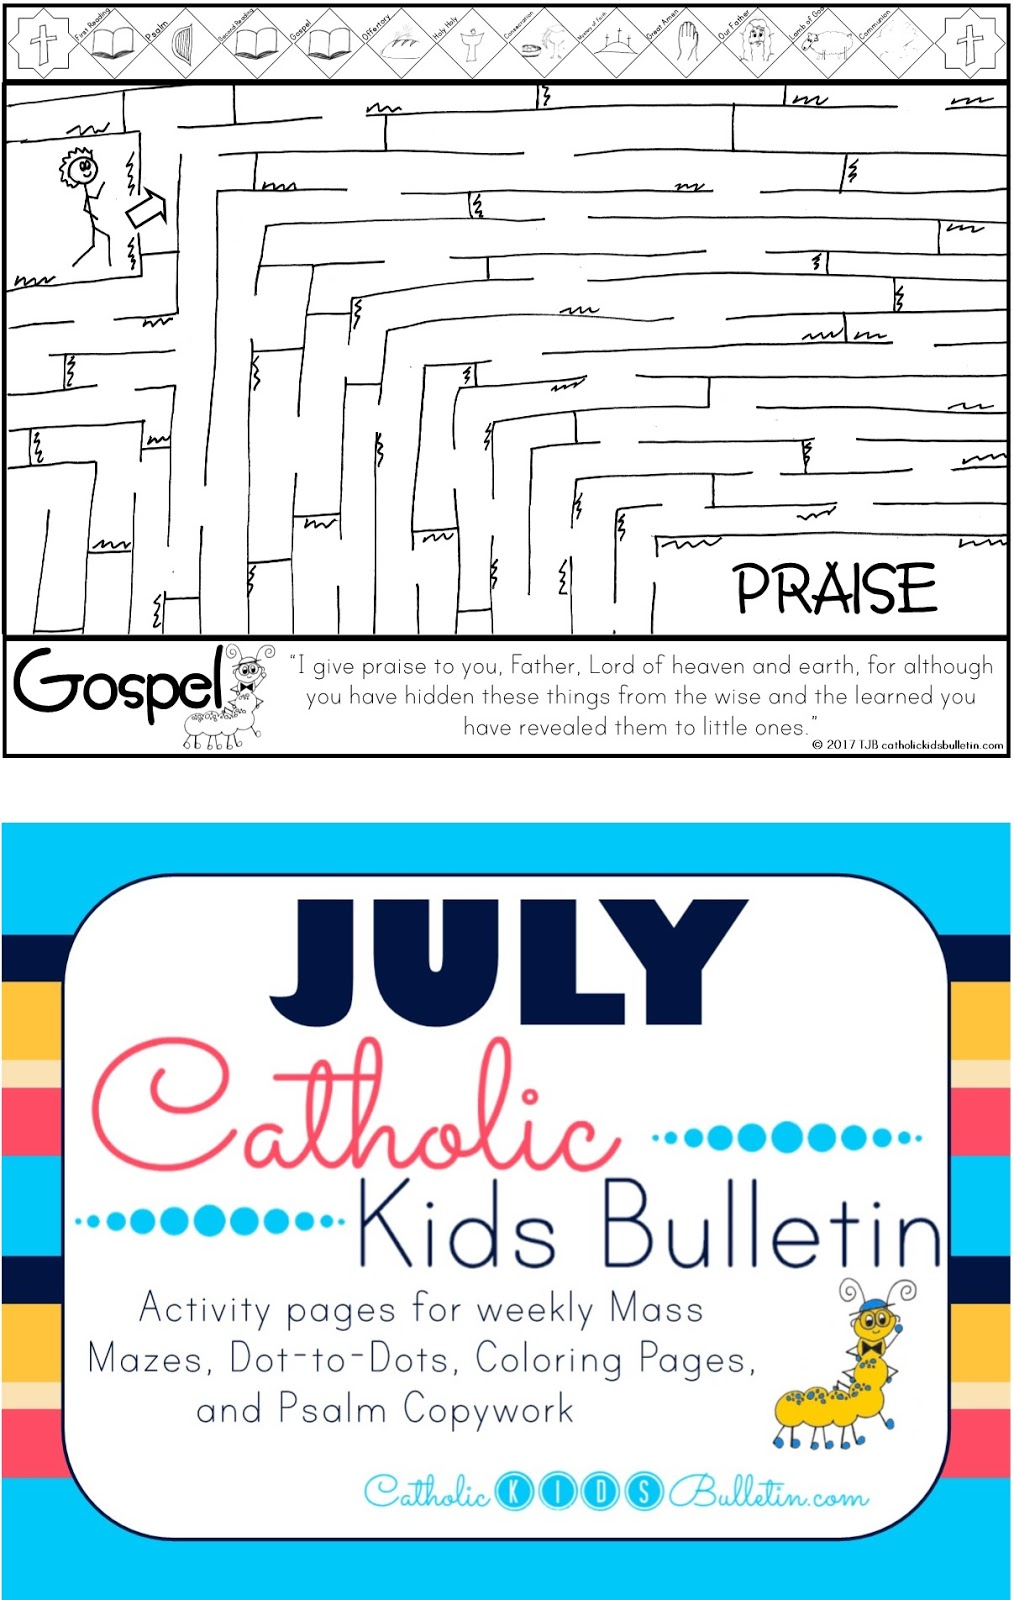 Coloring pages for dots for 4 of july - 2017 July Catholic Kids Bulletin By Theresa On Scribd